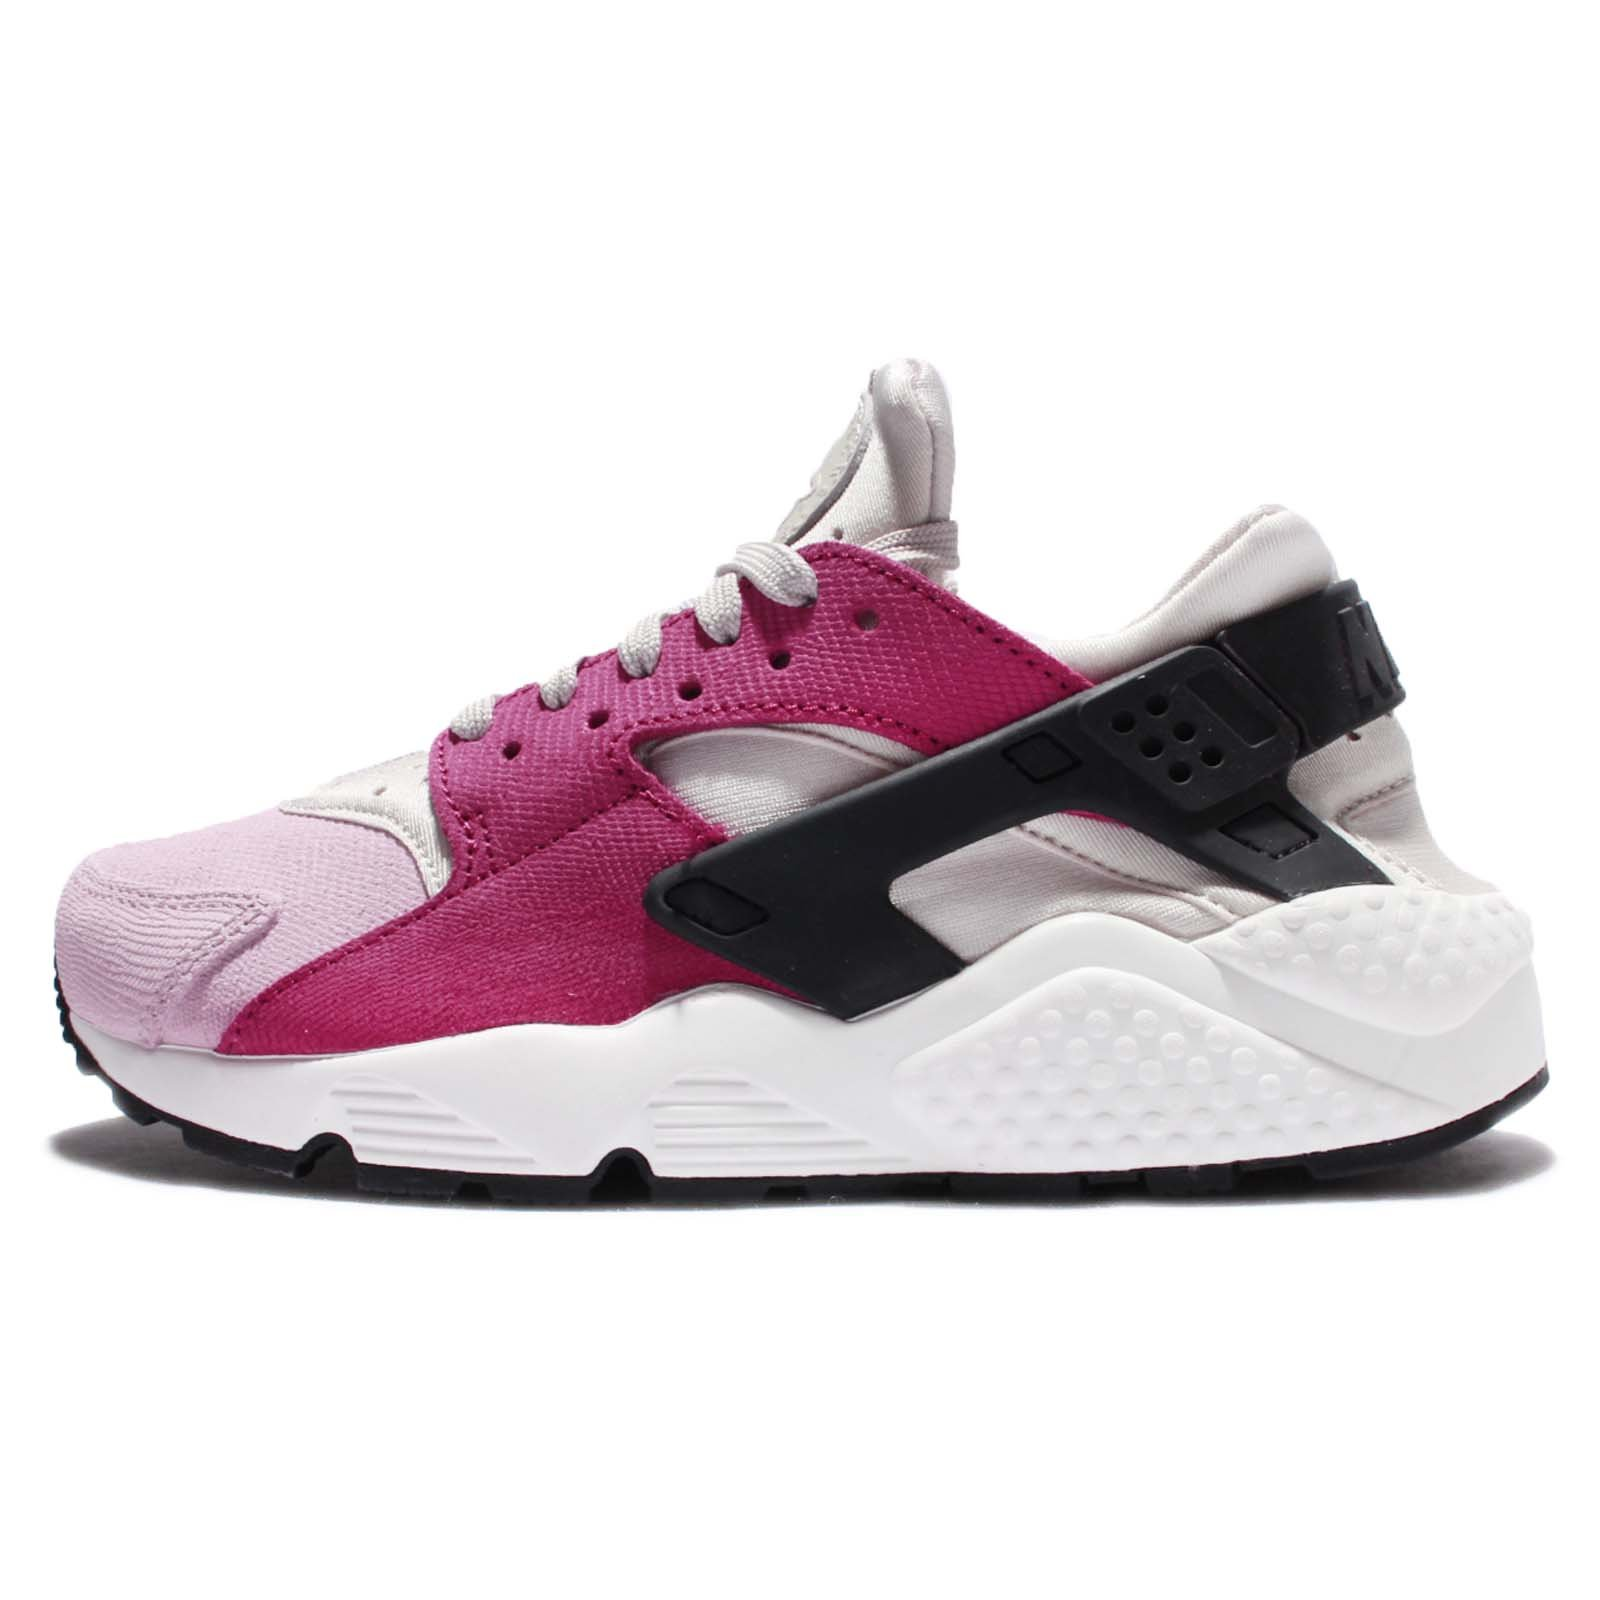 the latest 38568 8d308 Galleon - NIKE Women s WMNS Air Huarache Run PRM, Light Bone Black-NBL  RD-PLM FG, 5.5 US